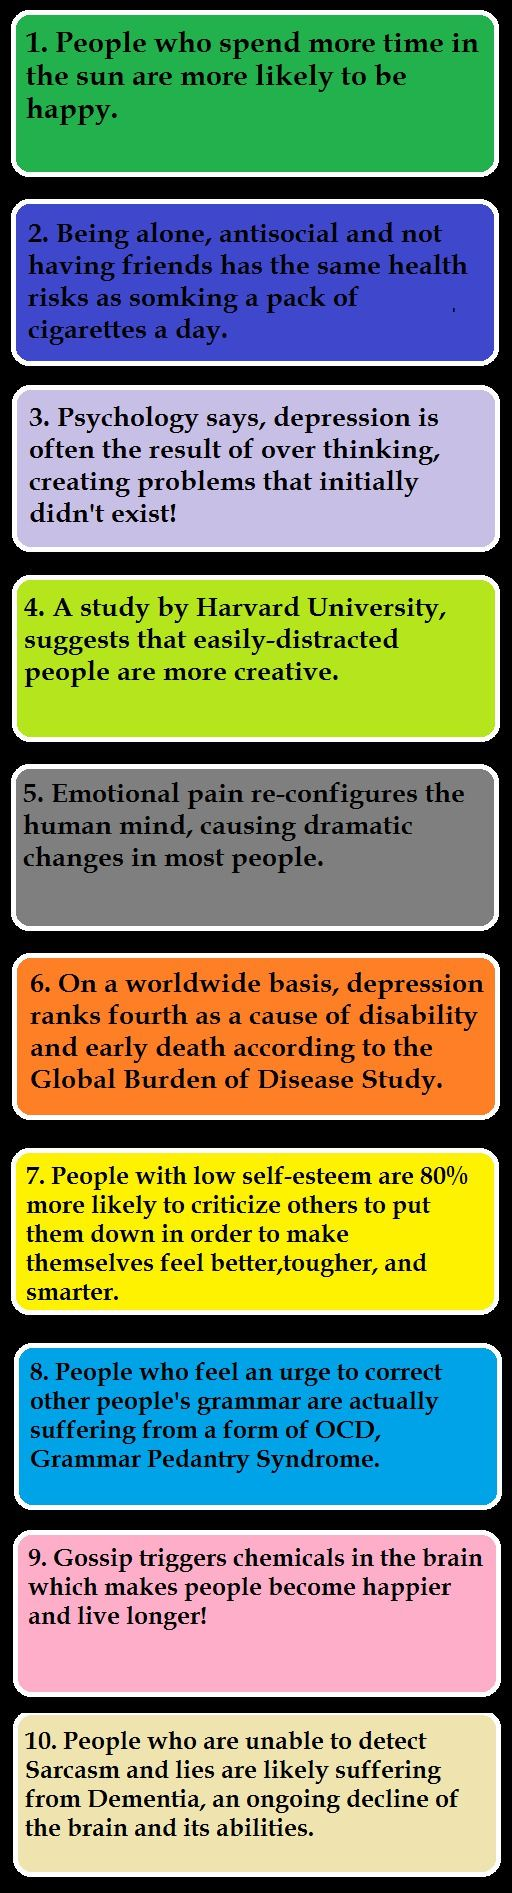 10 psychological facts